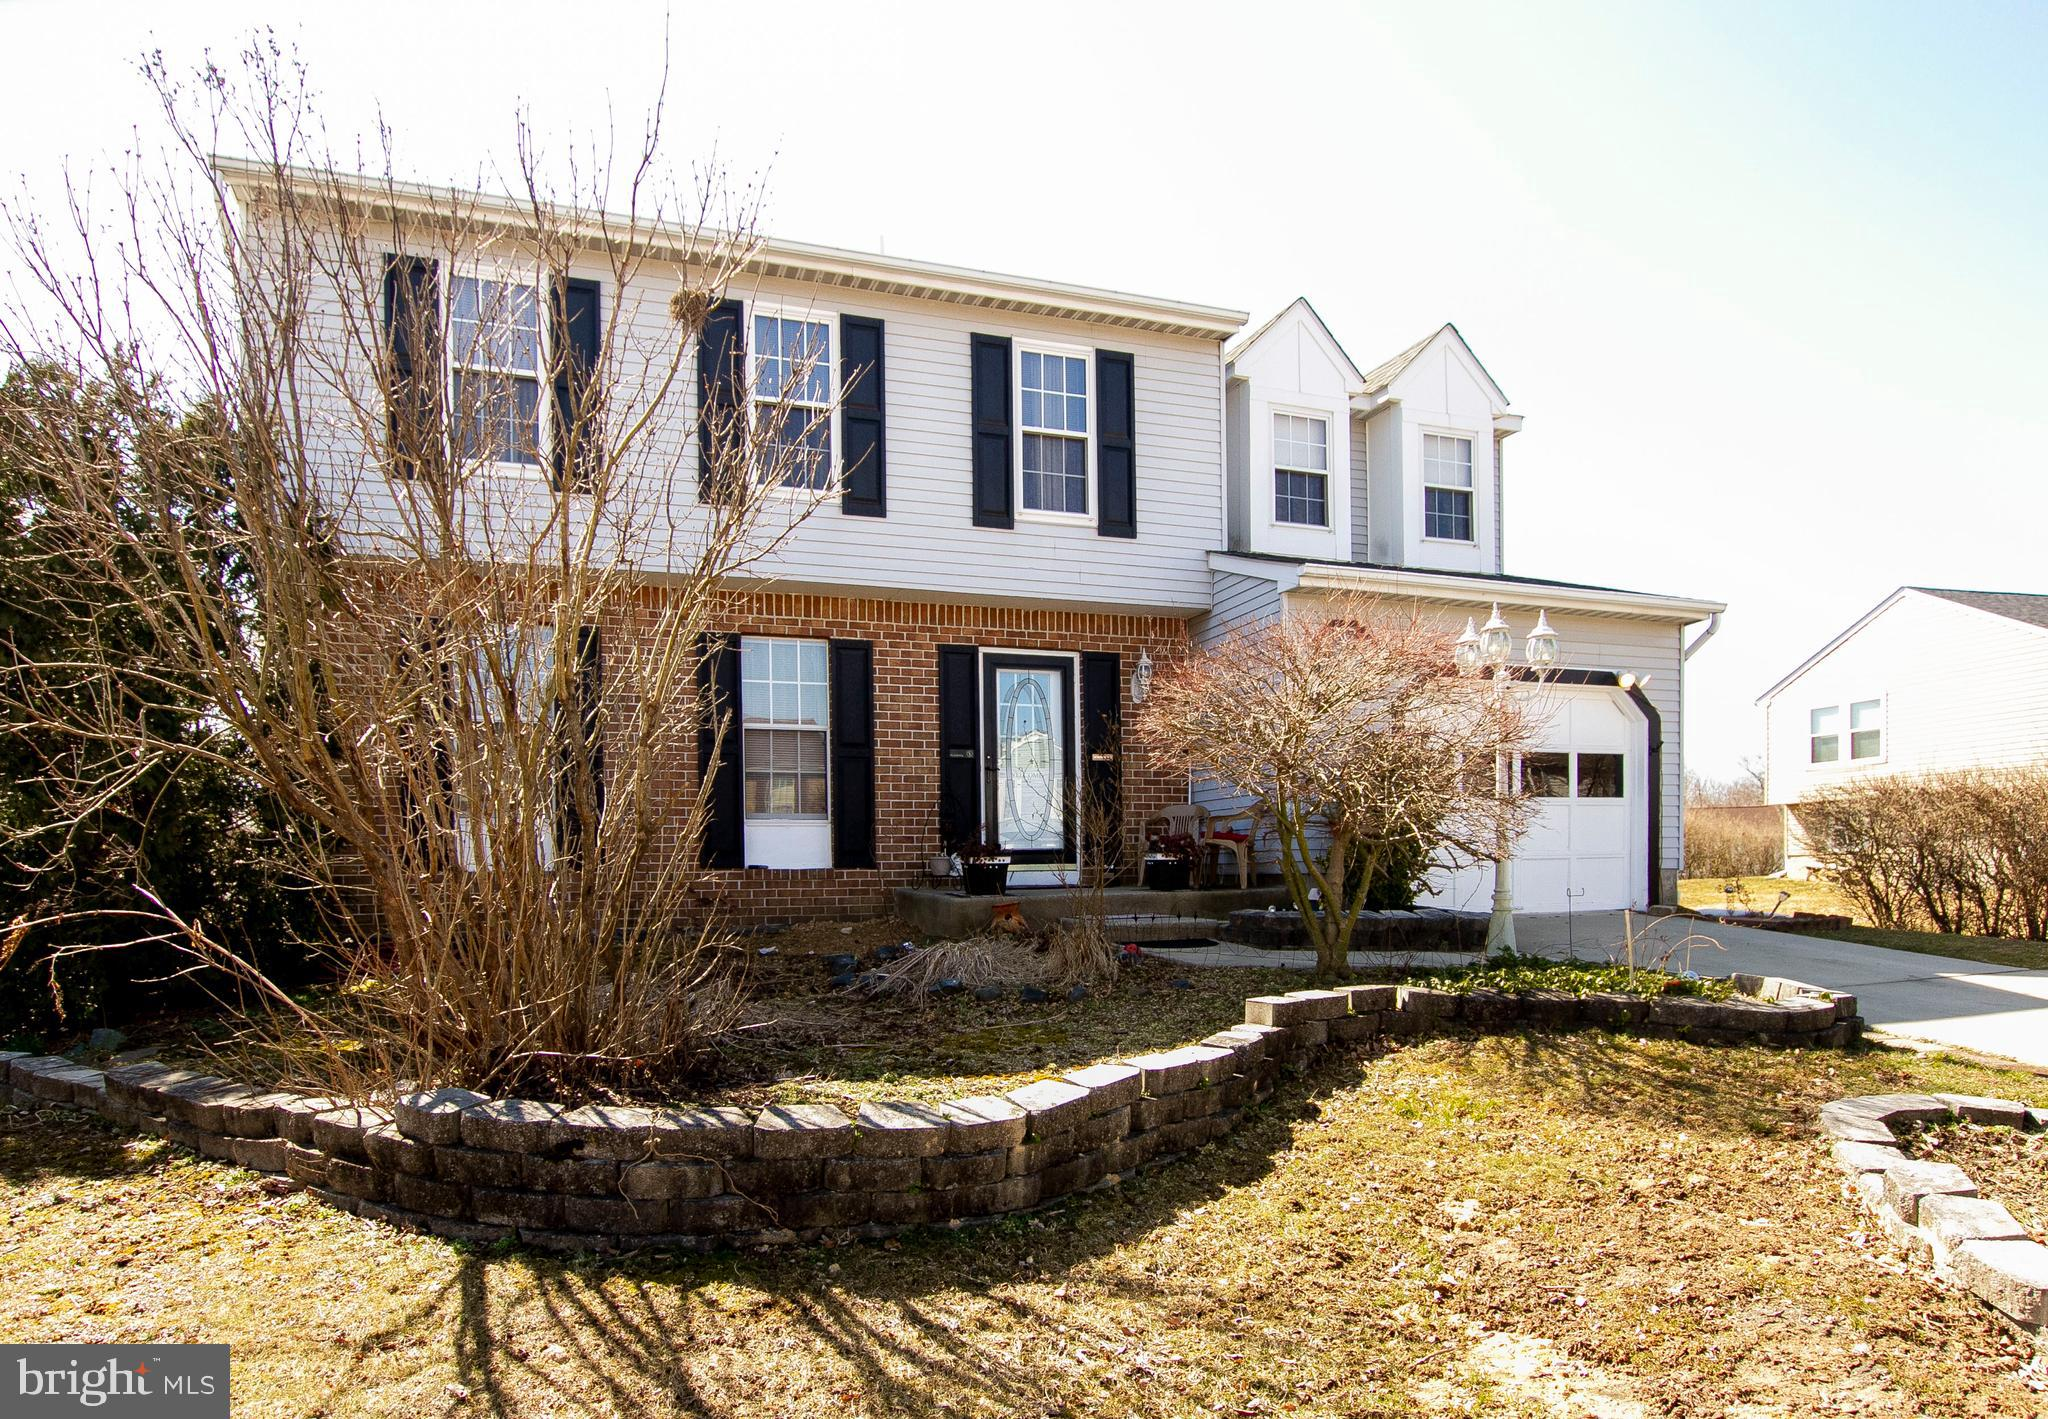 4 Bedroom 2.5 bath house for sale in Woodbridge! Features include: attached 1-car garage, stainless steel appliances, new granite countertops (2017), new HWH (2017) and new roof. Master bedroom has awalk-in closet and attached master bath with ceramic tile shower. Laundry on the 2nd floor! 2 sheds for storage.  Community amenities include tennis courts, tot lots, and pool!